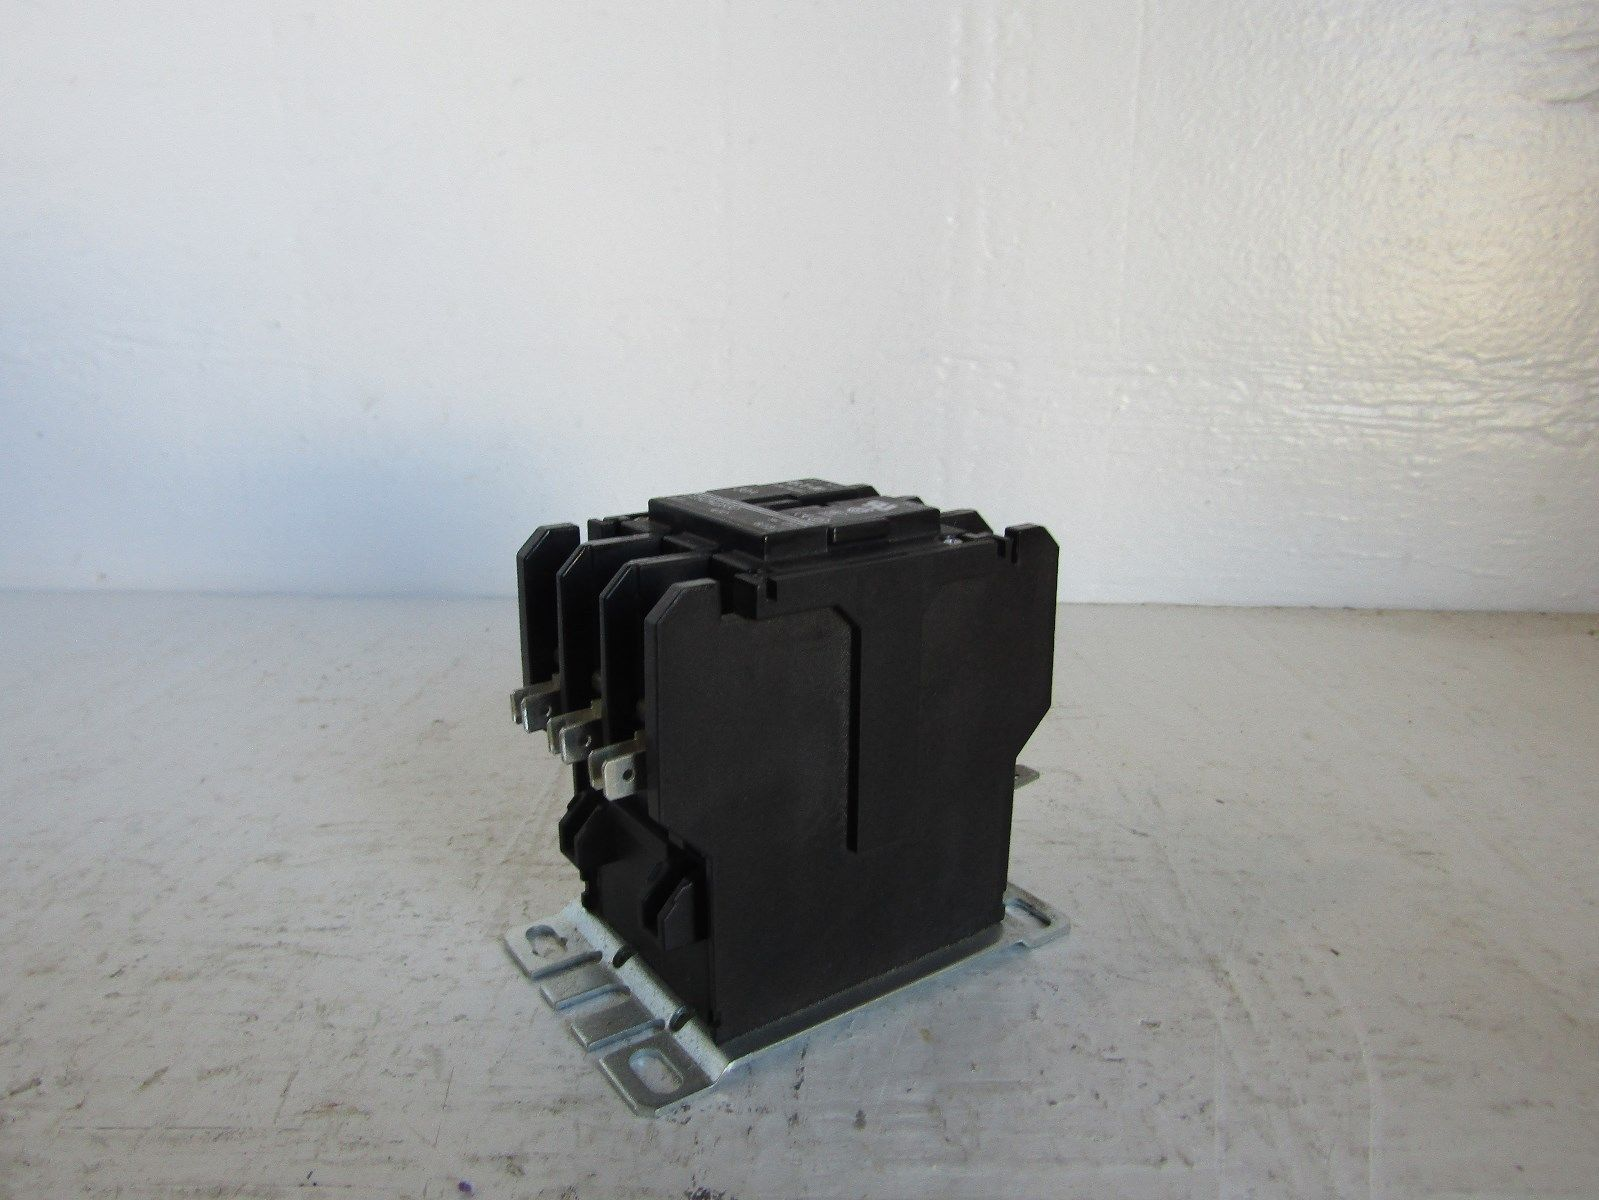 CUTLER HAMMER C25DND330 30 AMP 3 POLE CONTACTOR 120 VOLT COIL 331989252131 2?fit\=1000%2C750\&ssl\=1 c25dnd330 wiring diagram 3 phase contactor wiring diagram start Eaton C25dnf340 Contactor at aneh.co